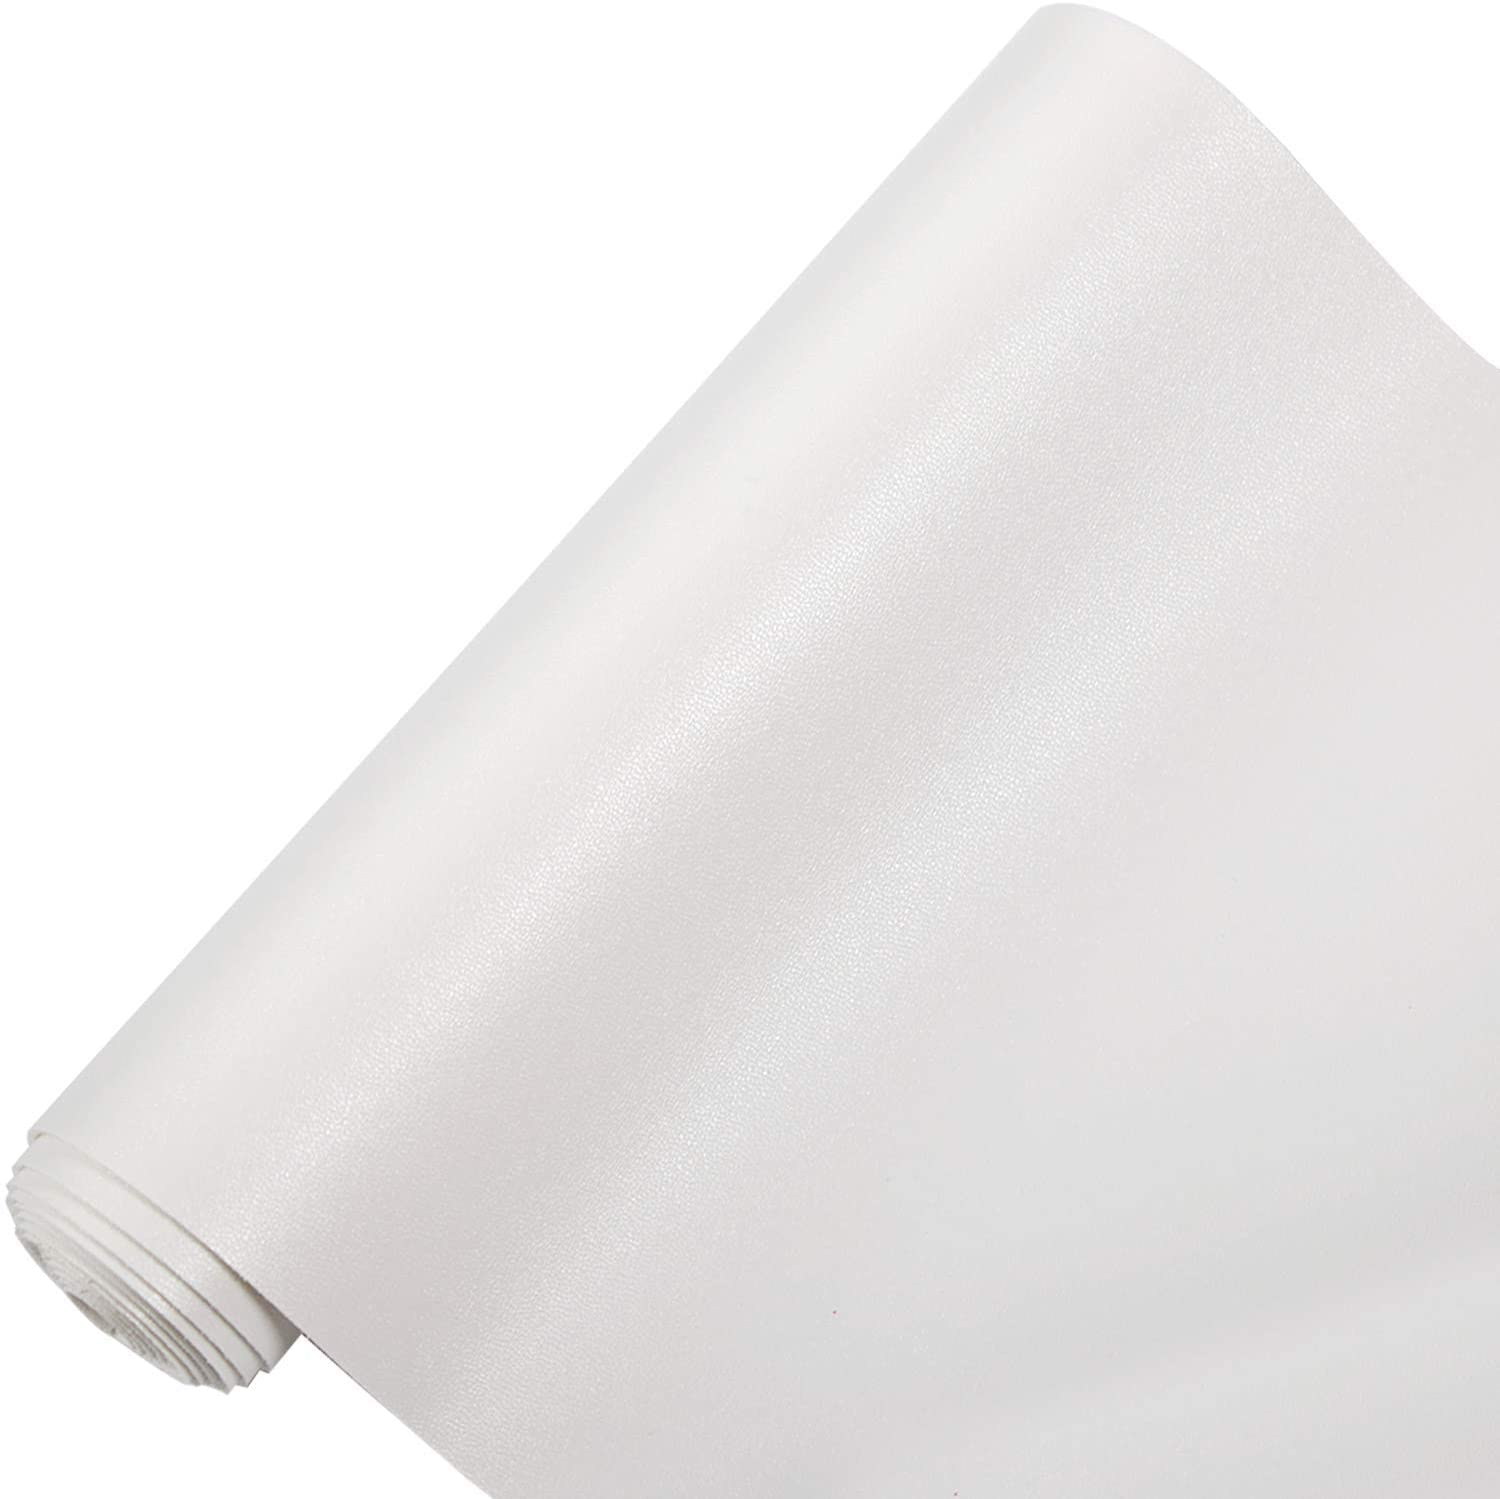 RAMYA Smooth Solid Color Faux Leather Sheets (7.8